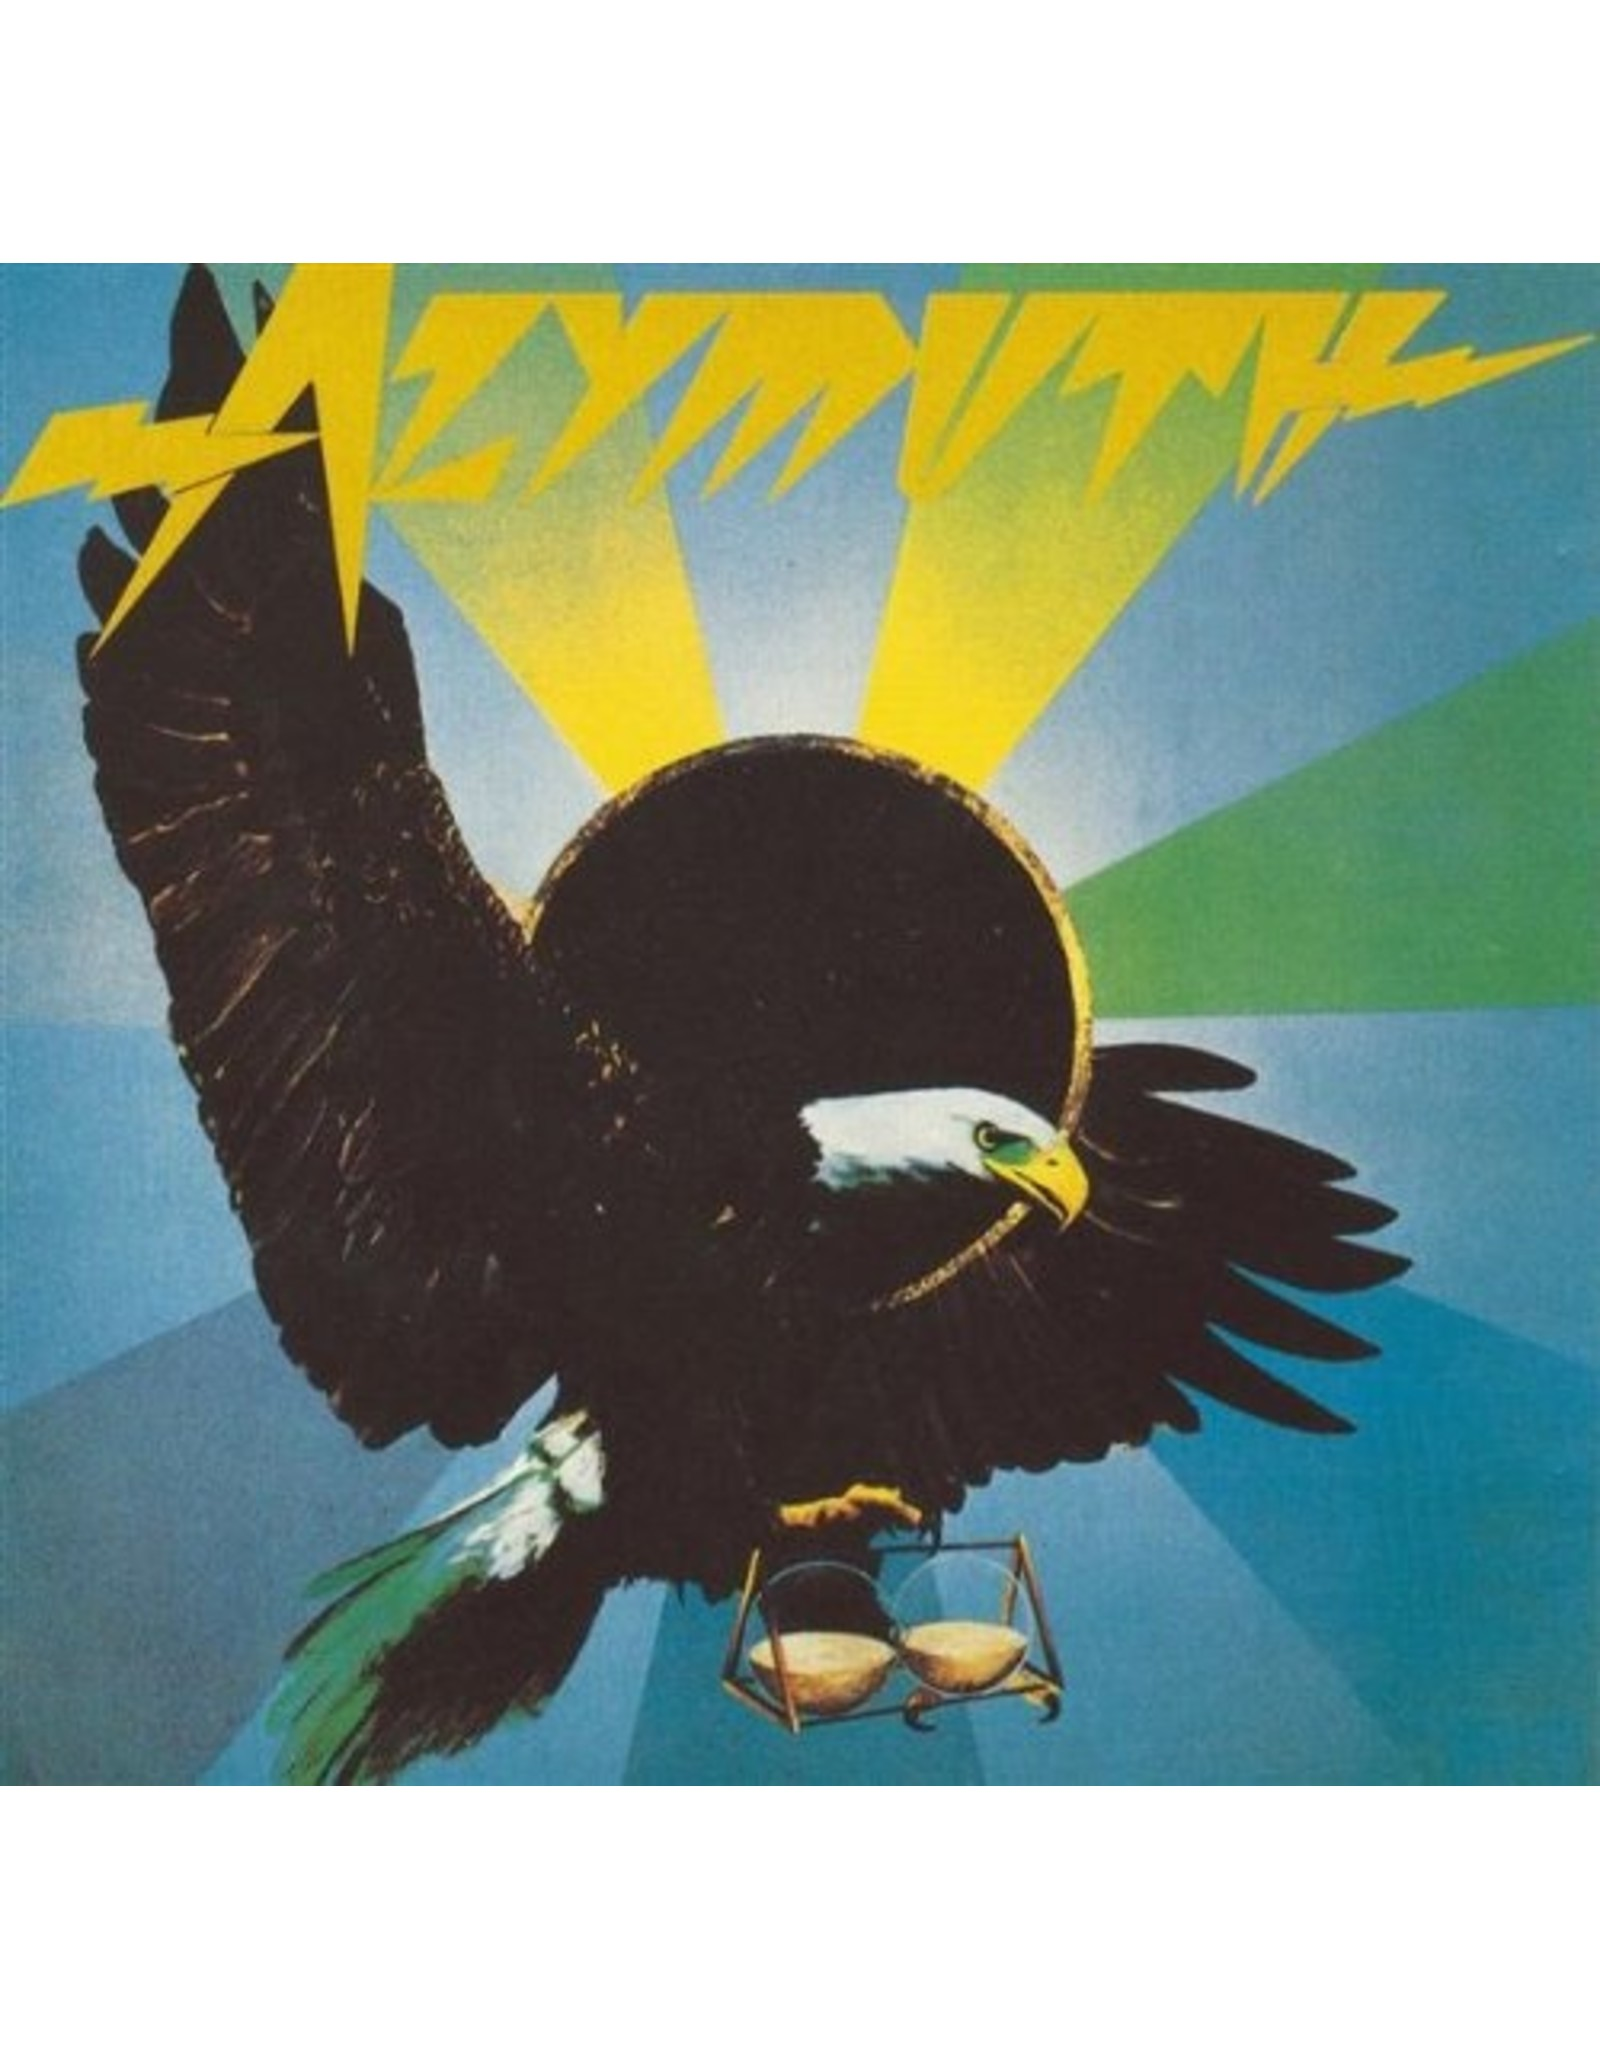 New Vinyl Azymuth - Aguia Nao Come Mosca LP